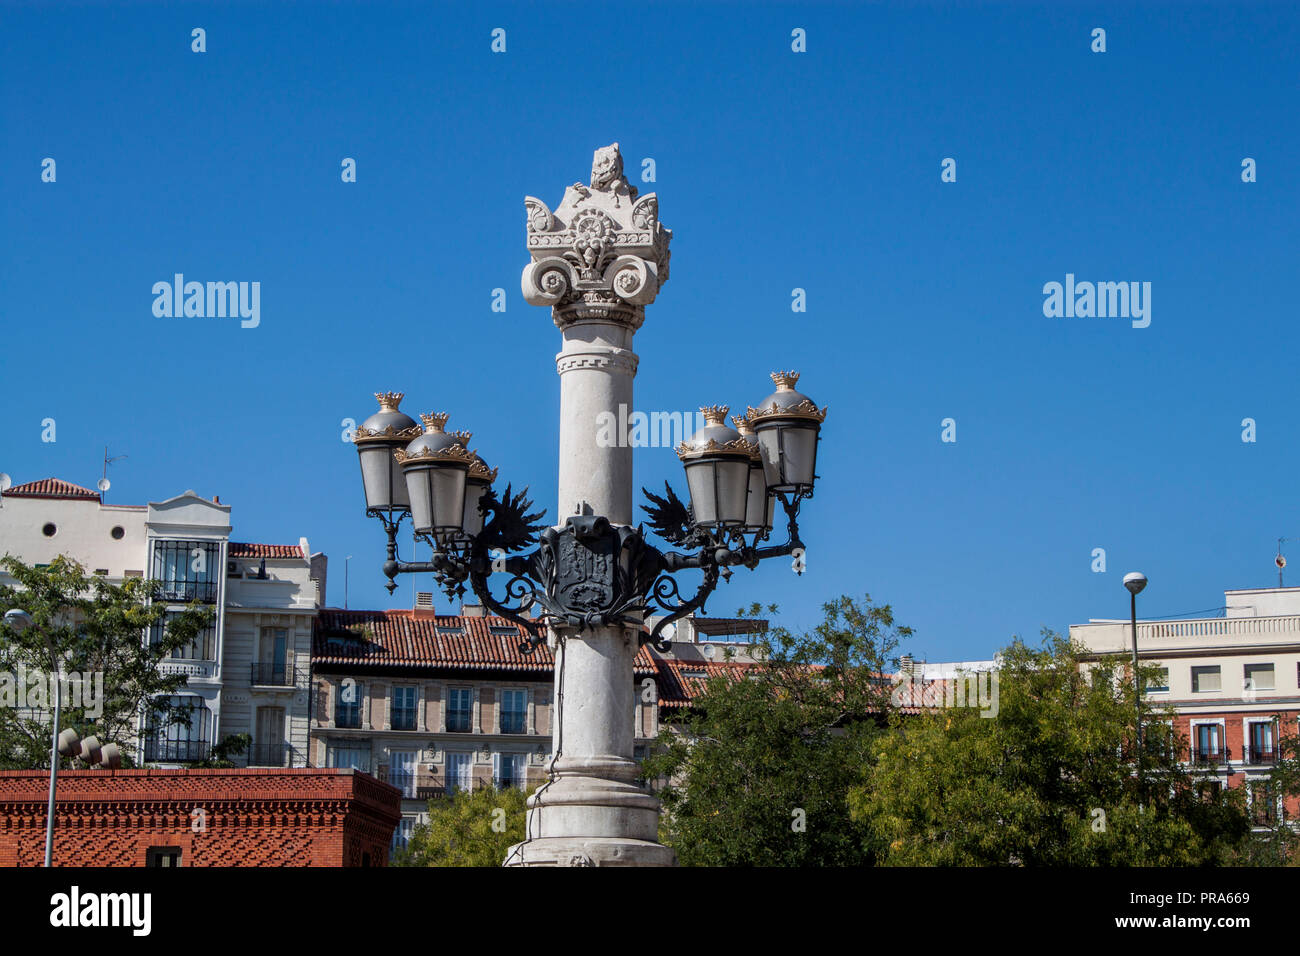 Old street lamp in Buen Retiro Park (Parque del Buen Retiro) in central Madrid, Spain, Europe. - Stock Image